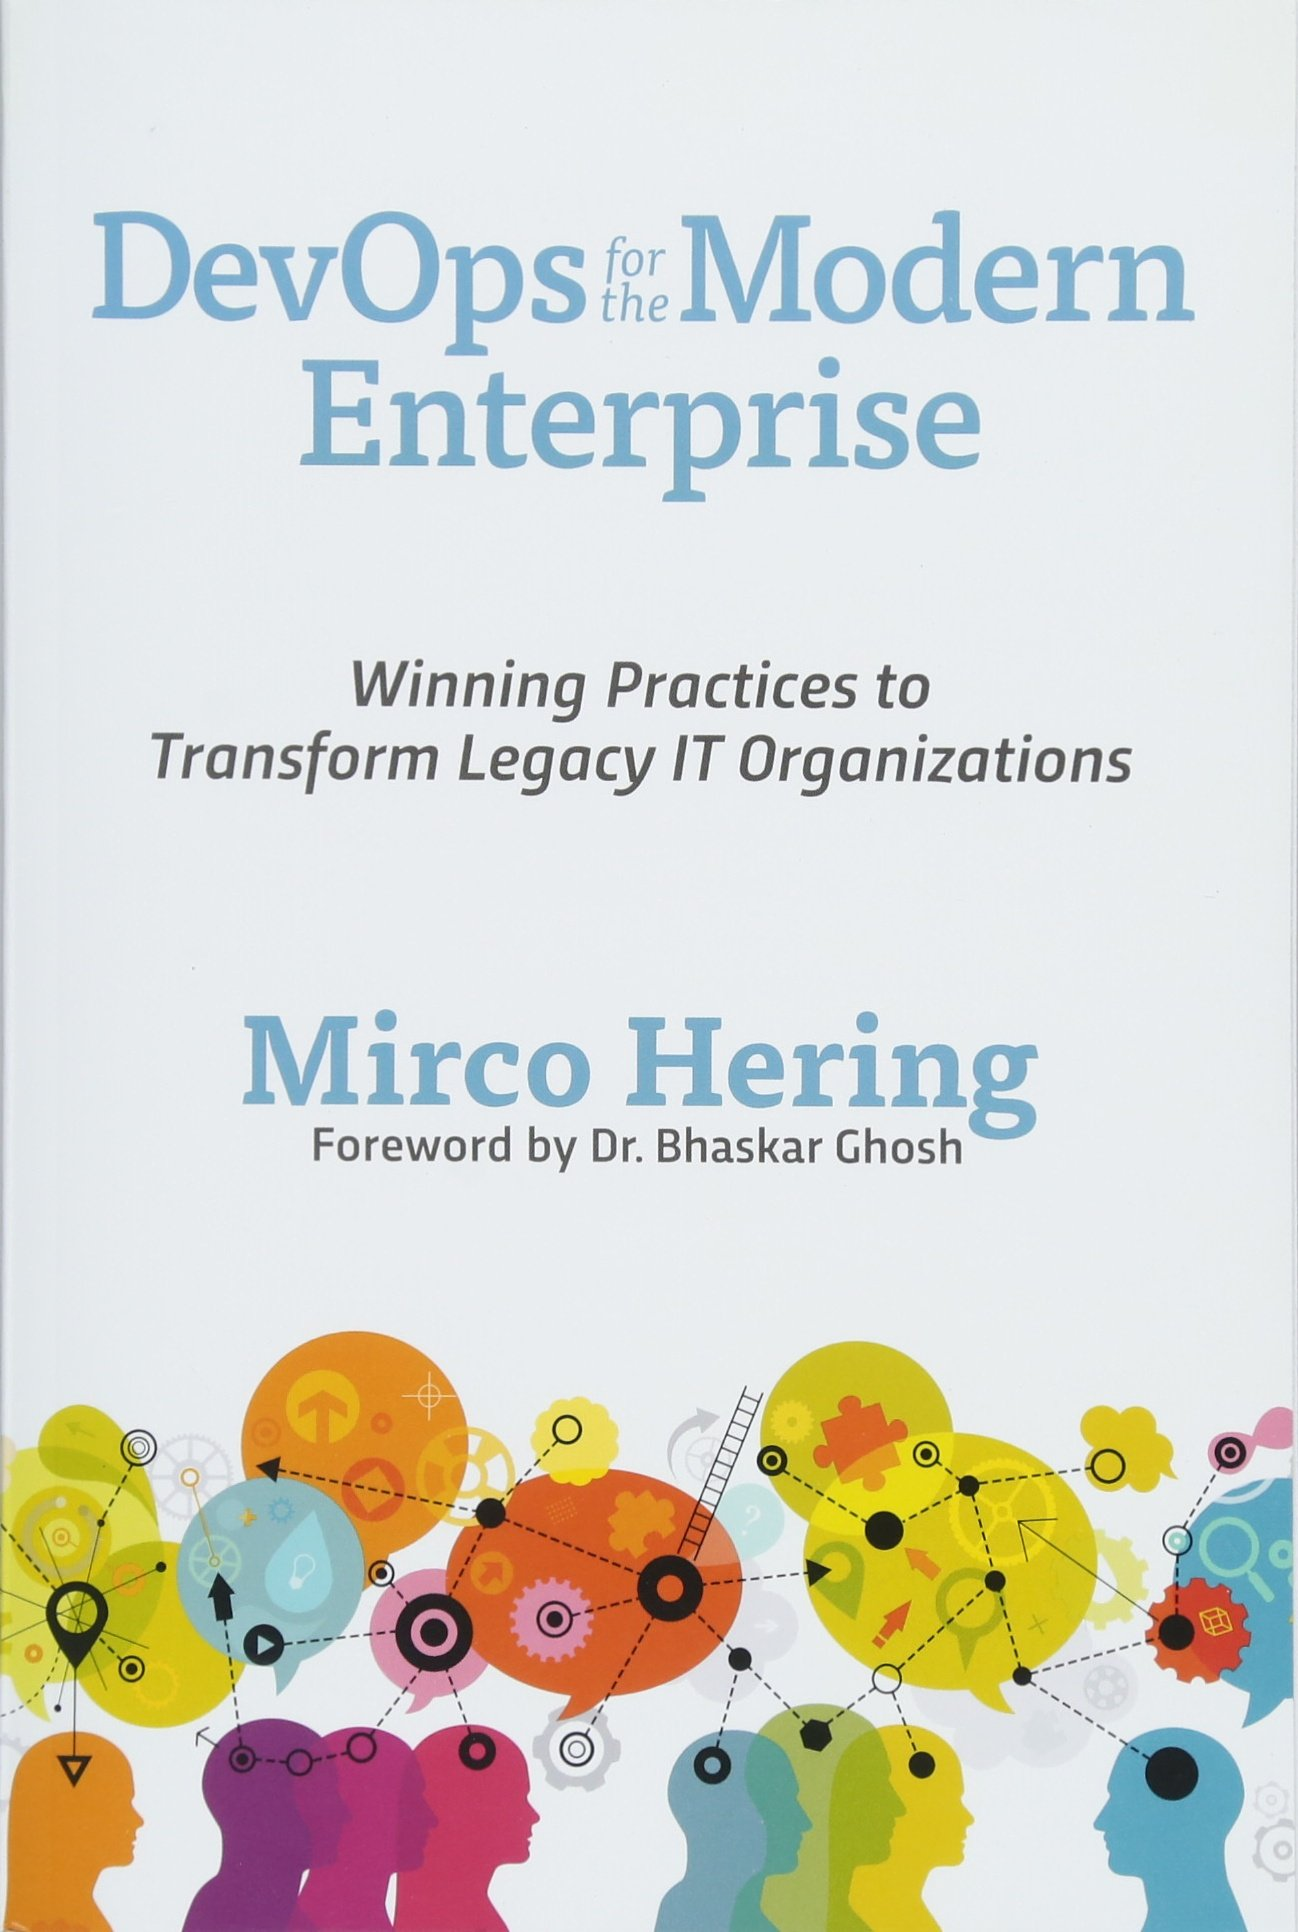 DevOps for the Modern Enterprise: Winning Practices to Transform Legacy IT Organizations